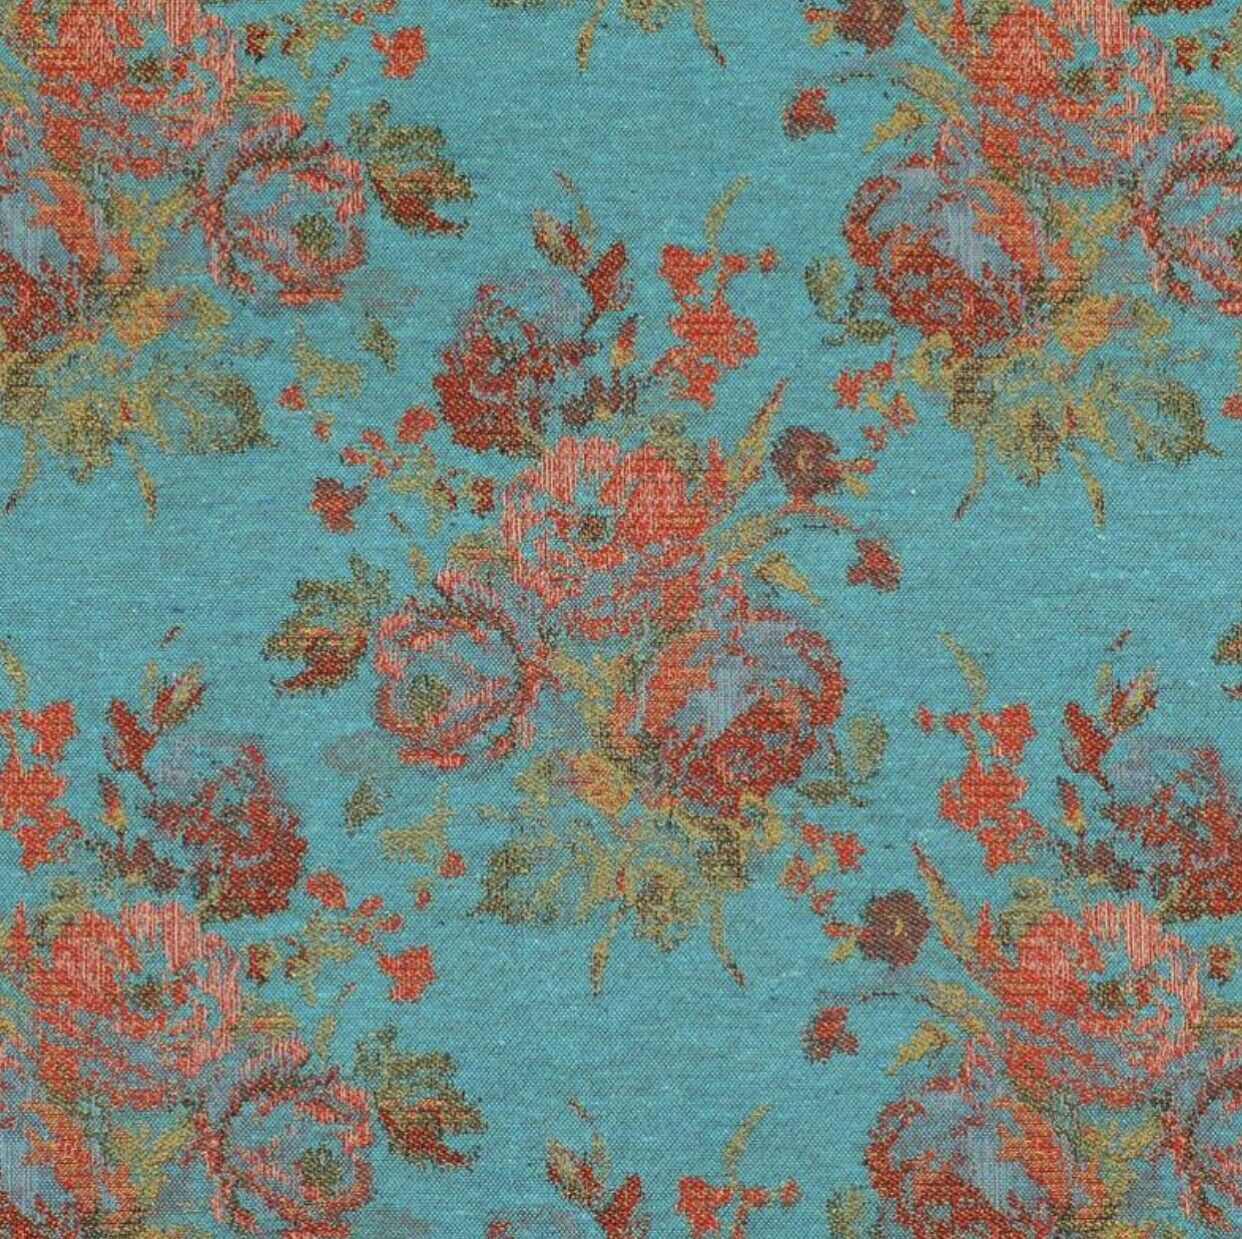 NEW Miss Juniper Designer Floral Needlepoint Inspired Upholstery Fabric- Turquoise & Roses